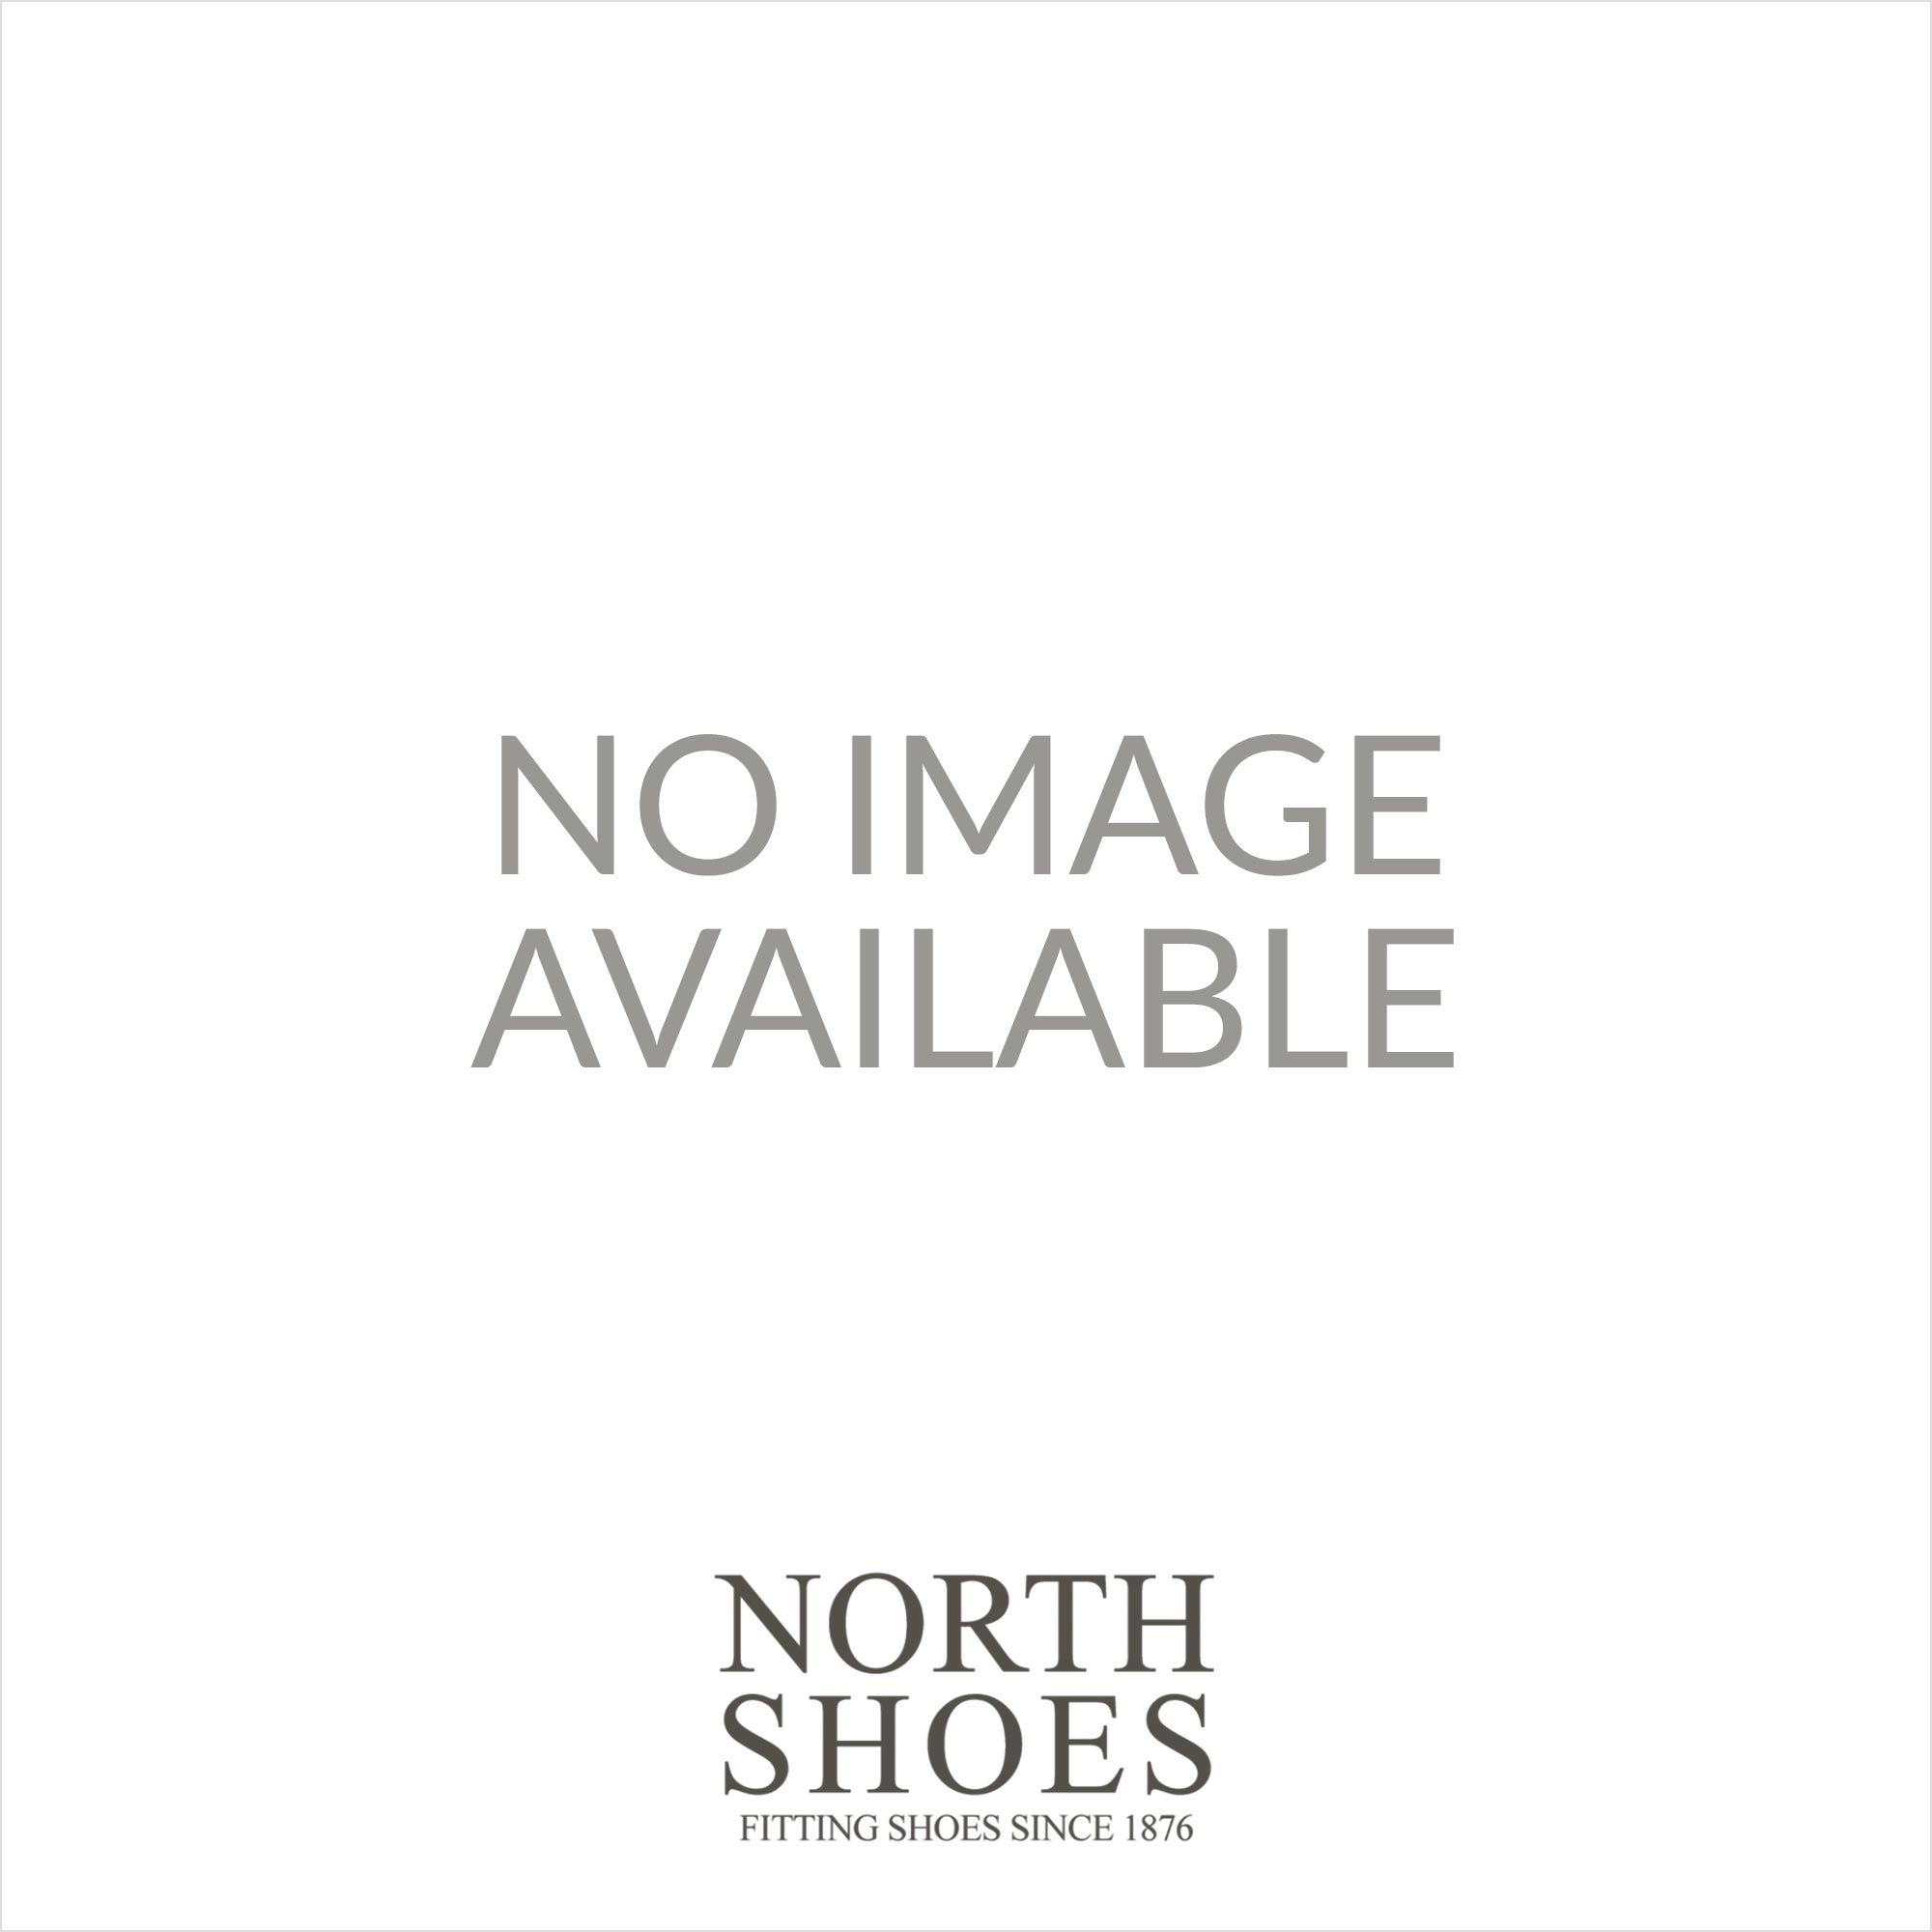 25011-29 Tan Leather Womens Heeled Ankle Boot